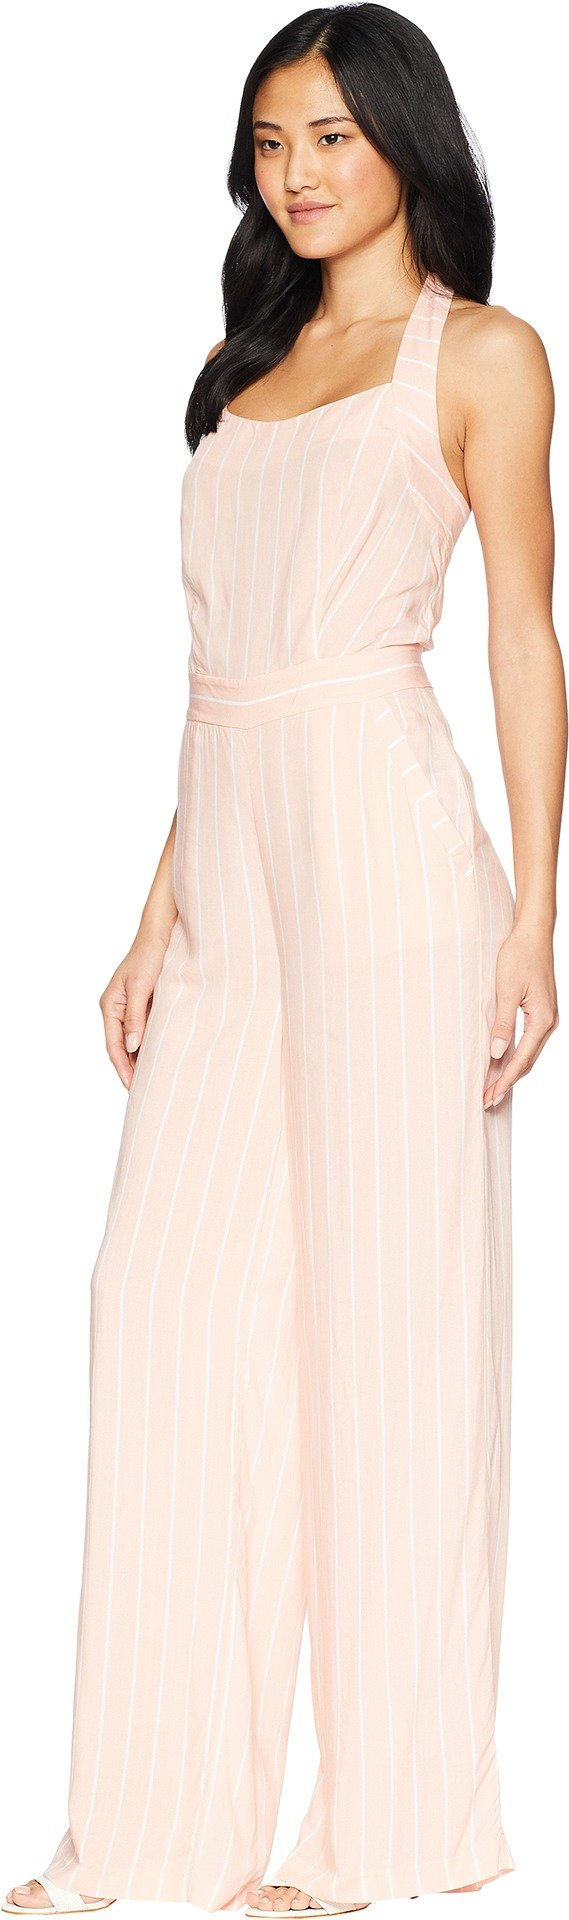 Juicy Couture Women's Cindy Stripe Jumpsuit Soft Pink Cindy Stripe 6 by Juicy Couture (Image #2)